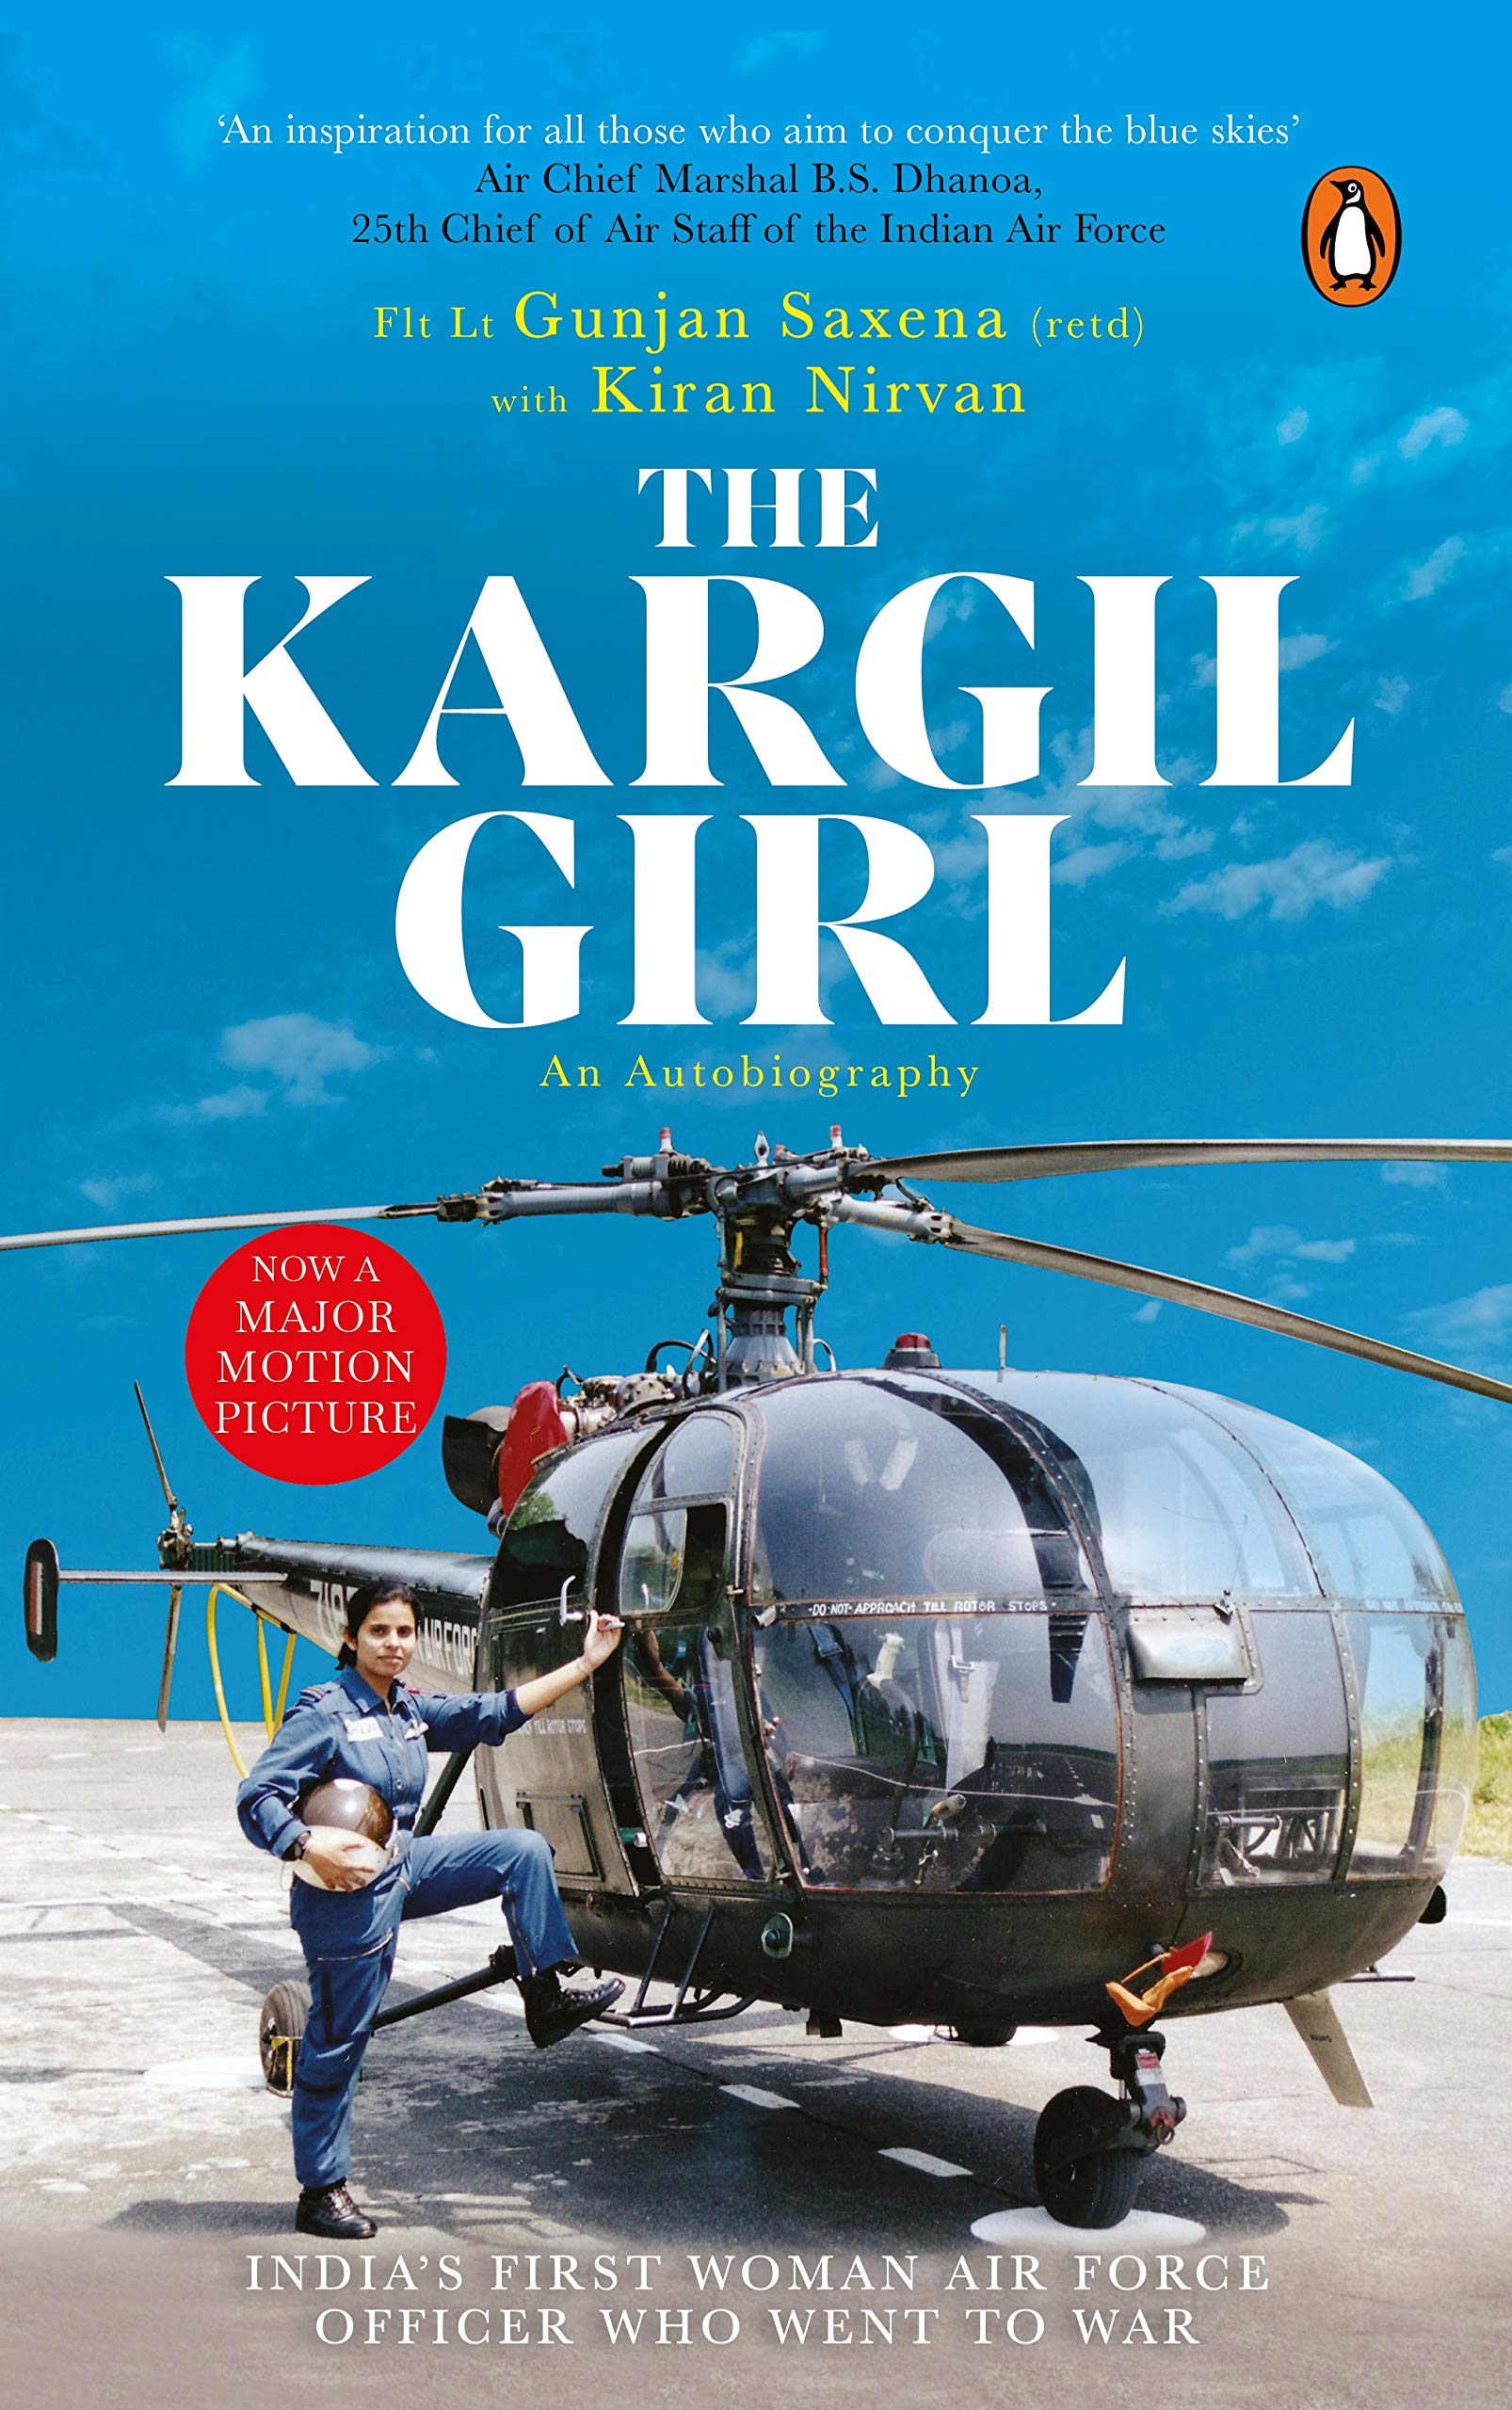 Buy The Kargil Girl An Autobiography Book Online At Low Prices In India The Kargil Girl An Autobiography Reviews Ratings Amazon In